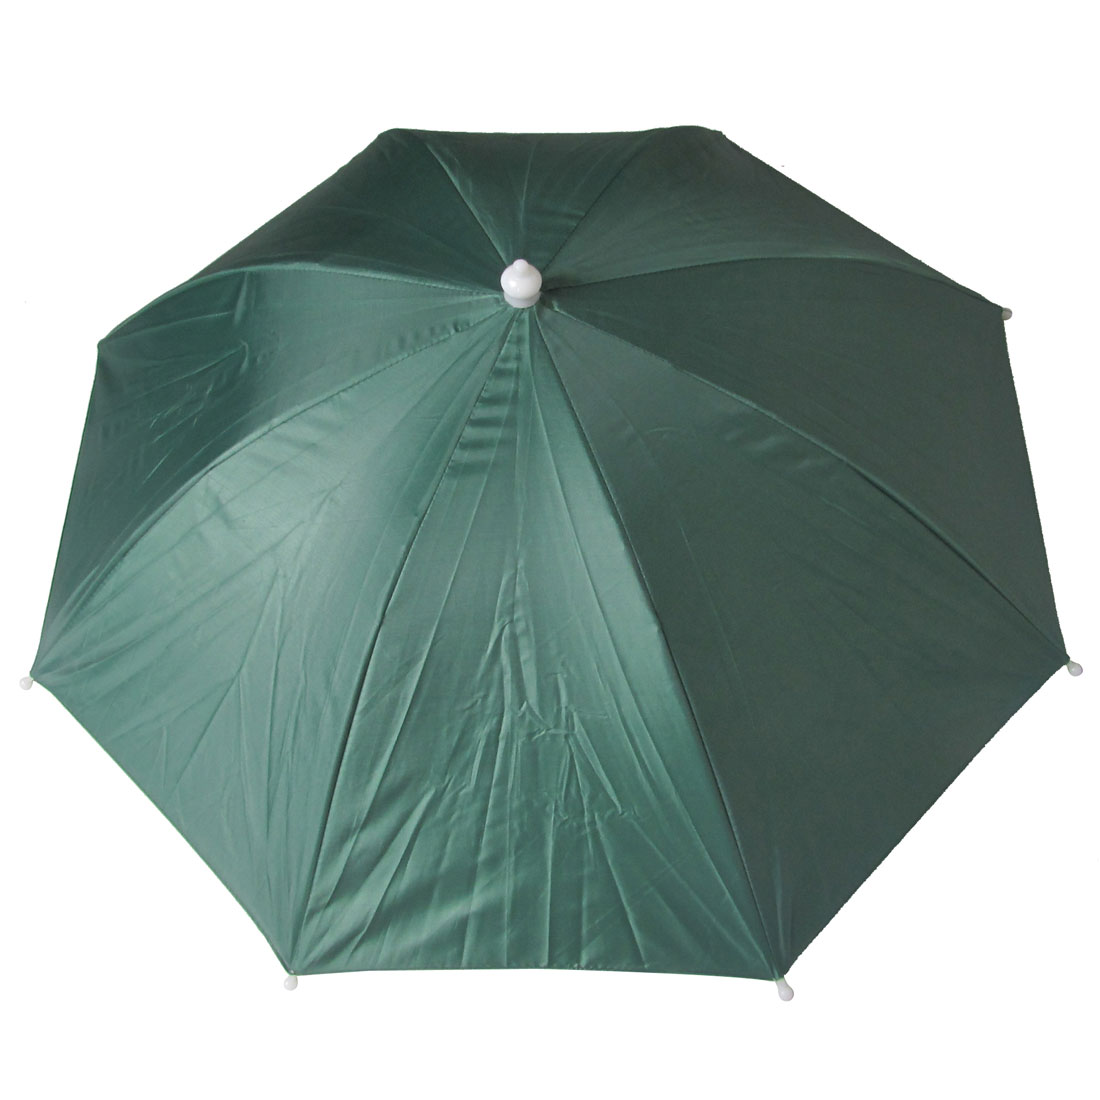 Silver Gray Lining Green Polyester Cover Fishing Sun Shading Umbrella Hat